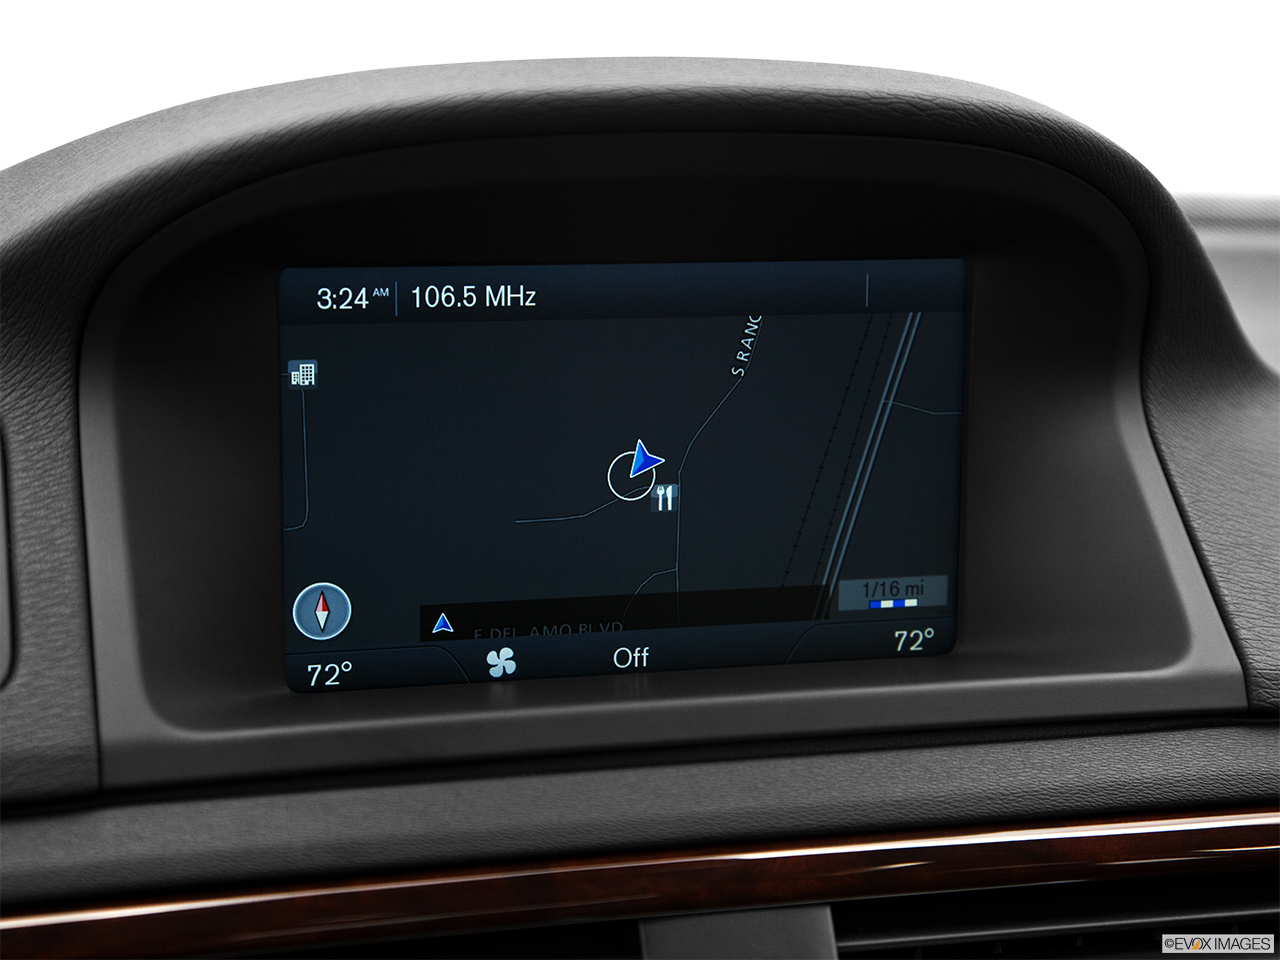 2013 Volvo S80 3.2 Platinum Driver position view of navigation system.